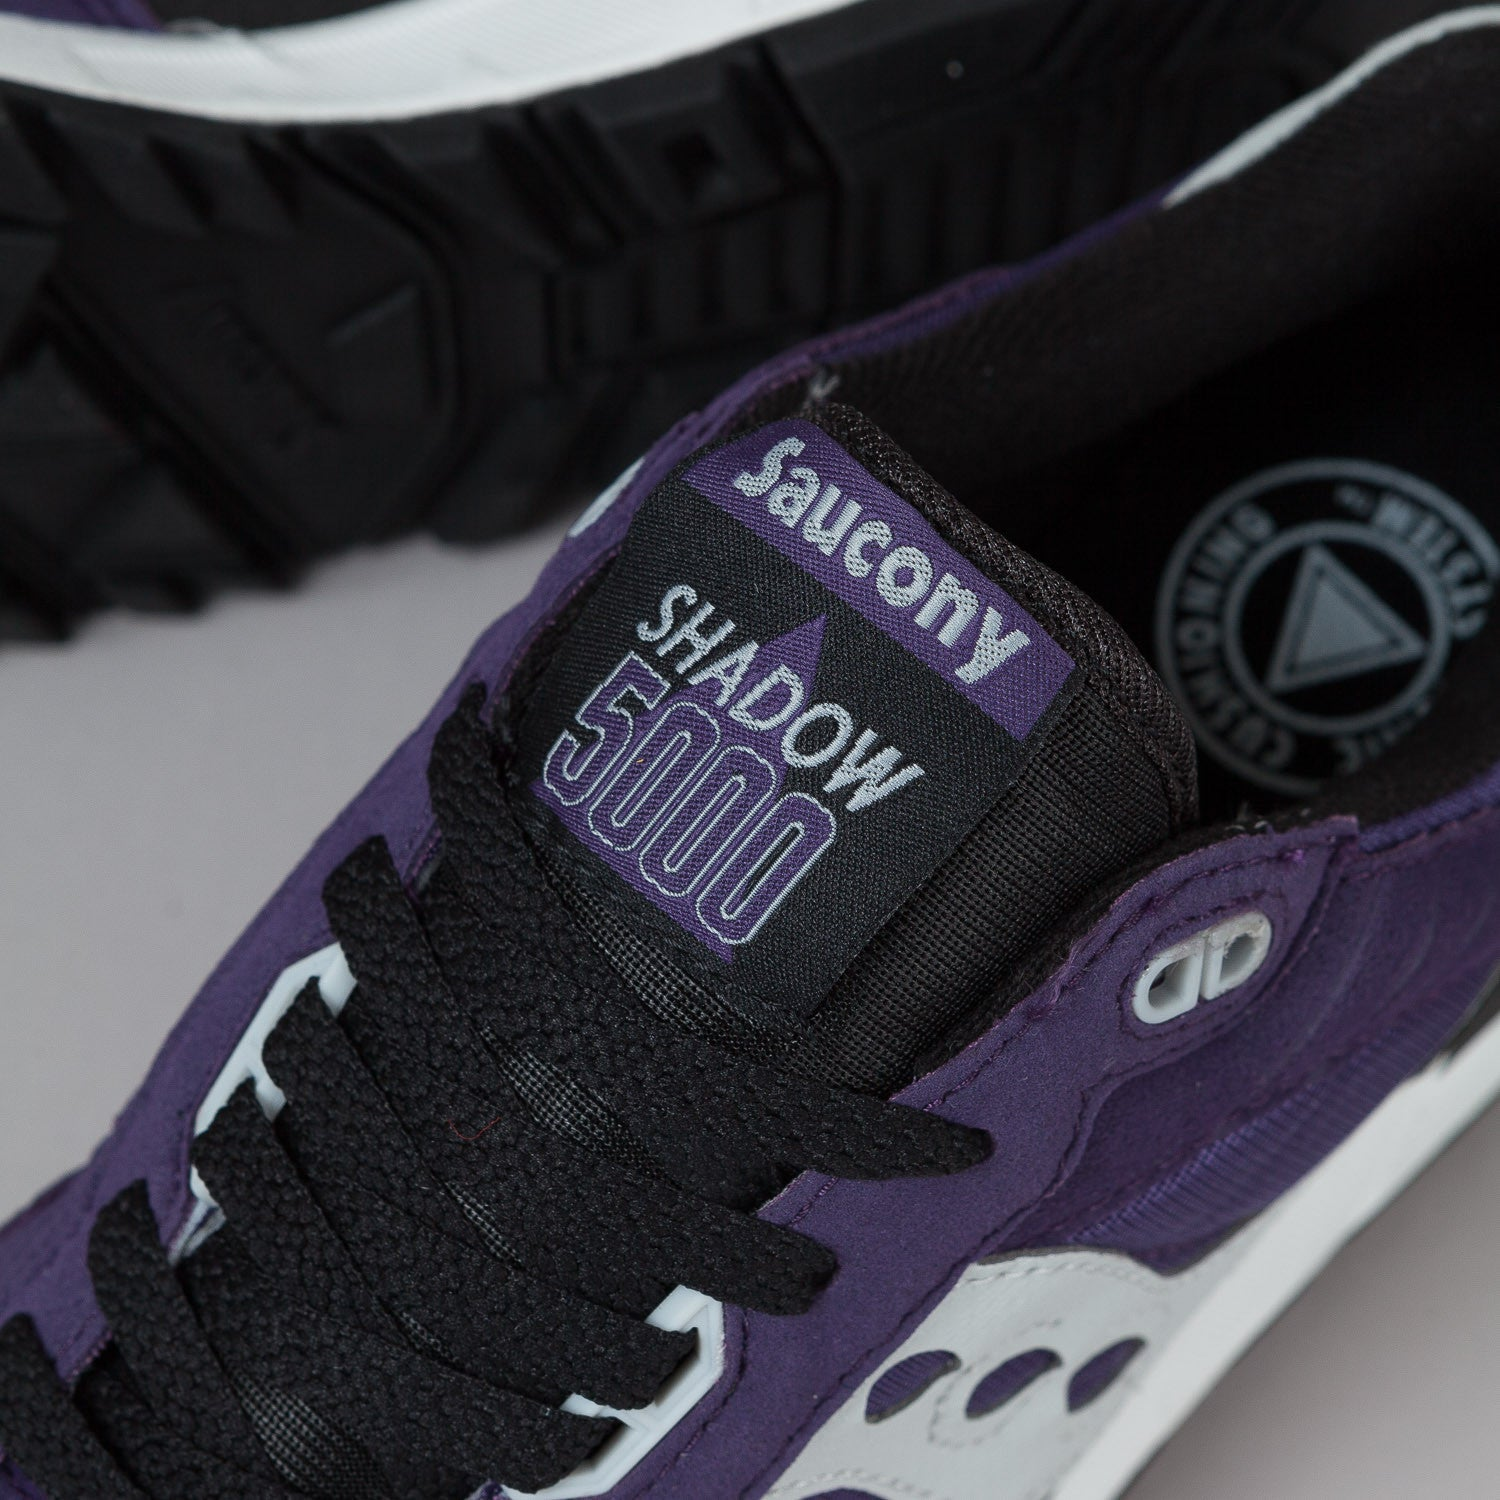 Saucony Shadow 5000 Shoes 'Fresh Picked Blackberry' - Purple / Black